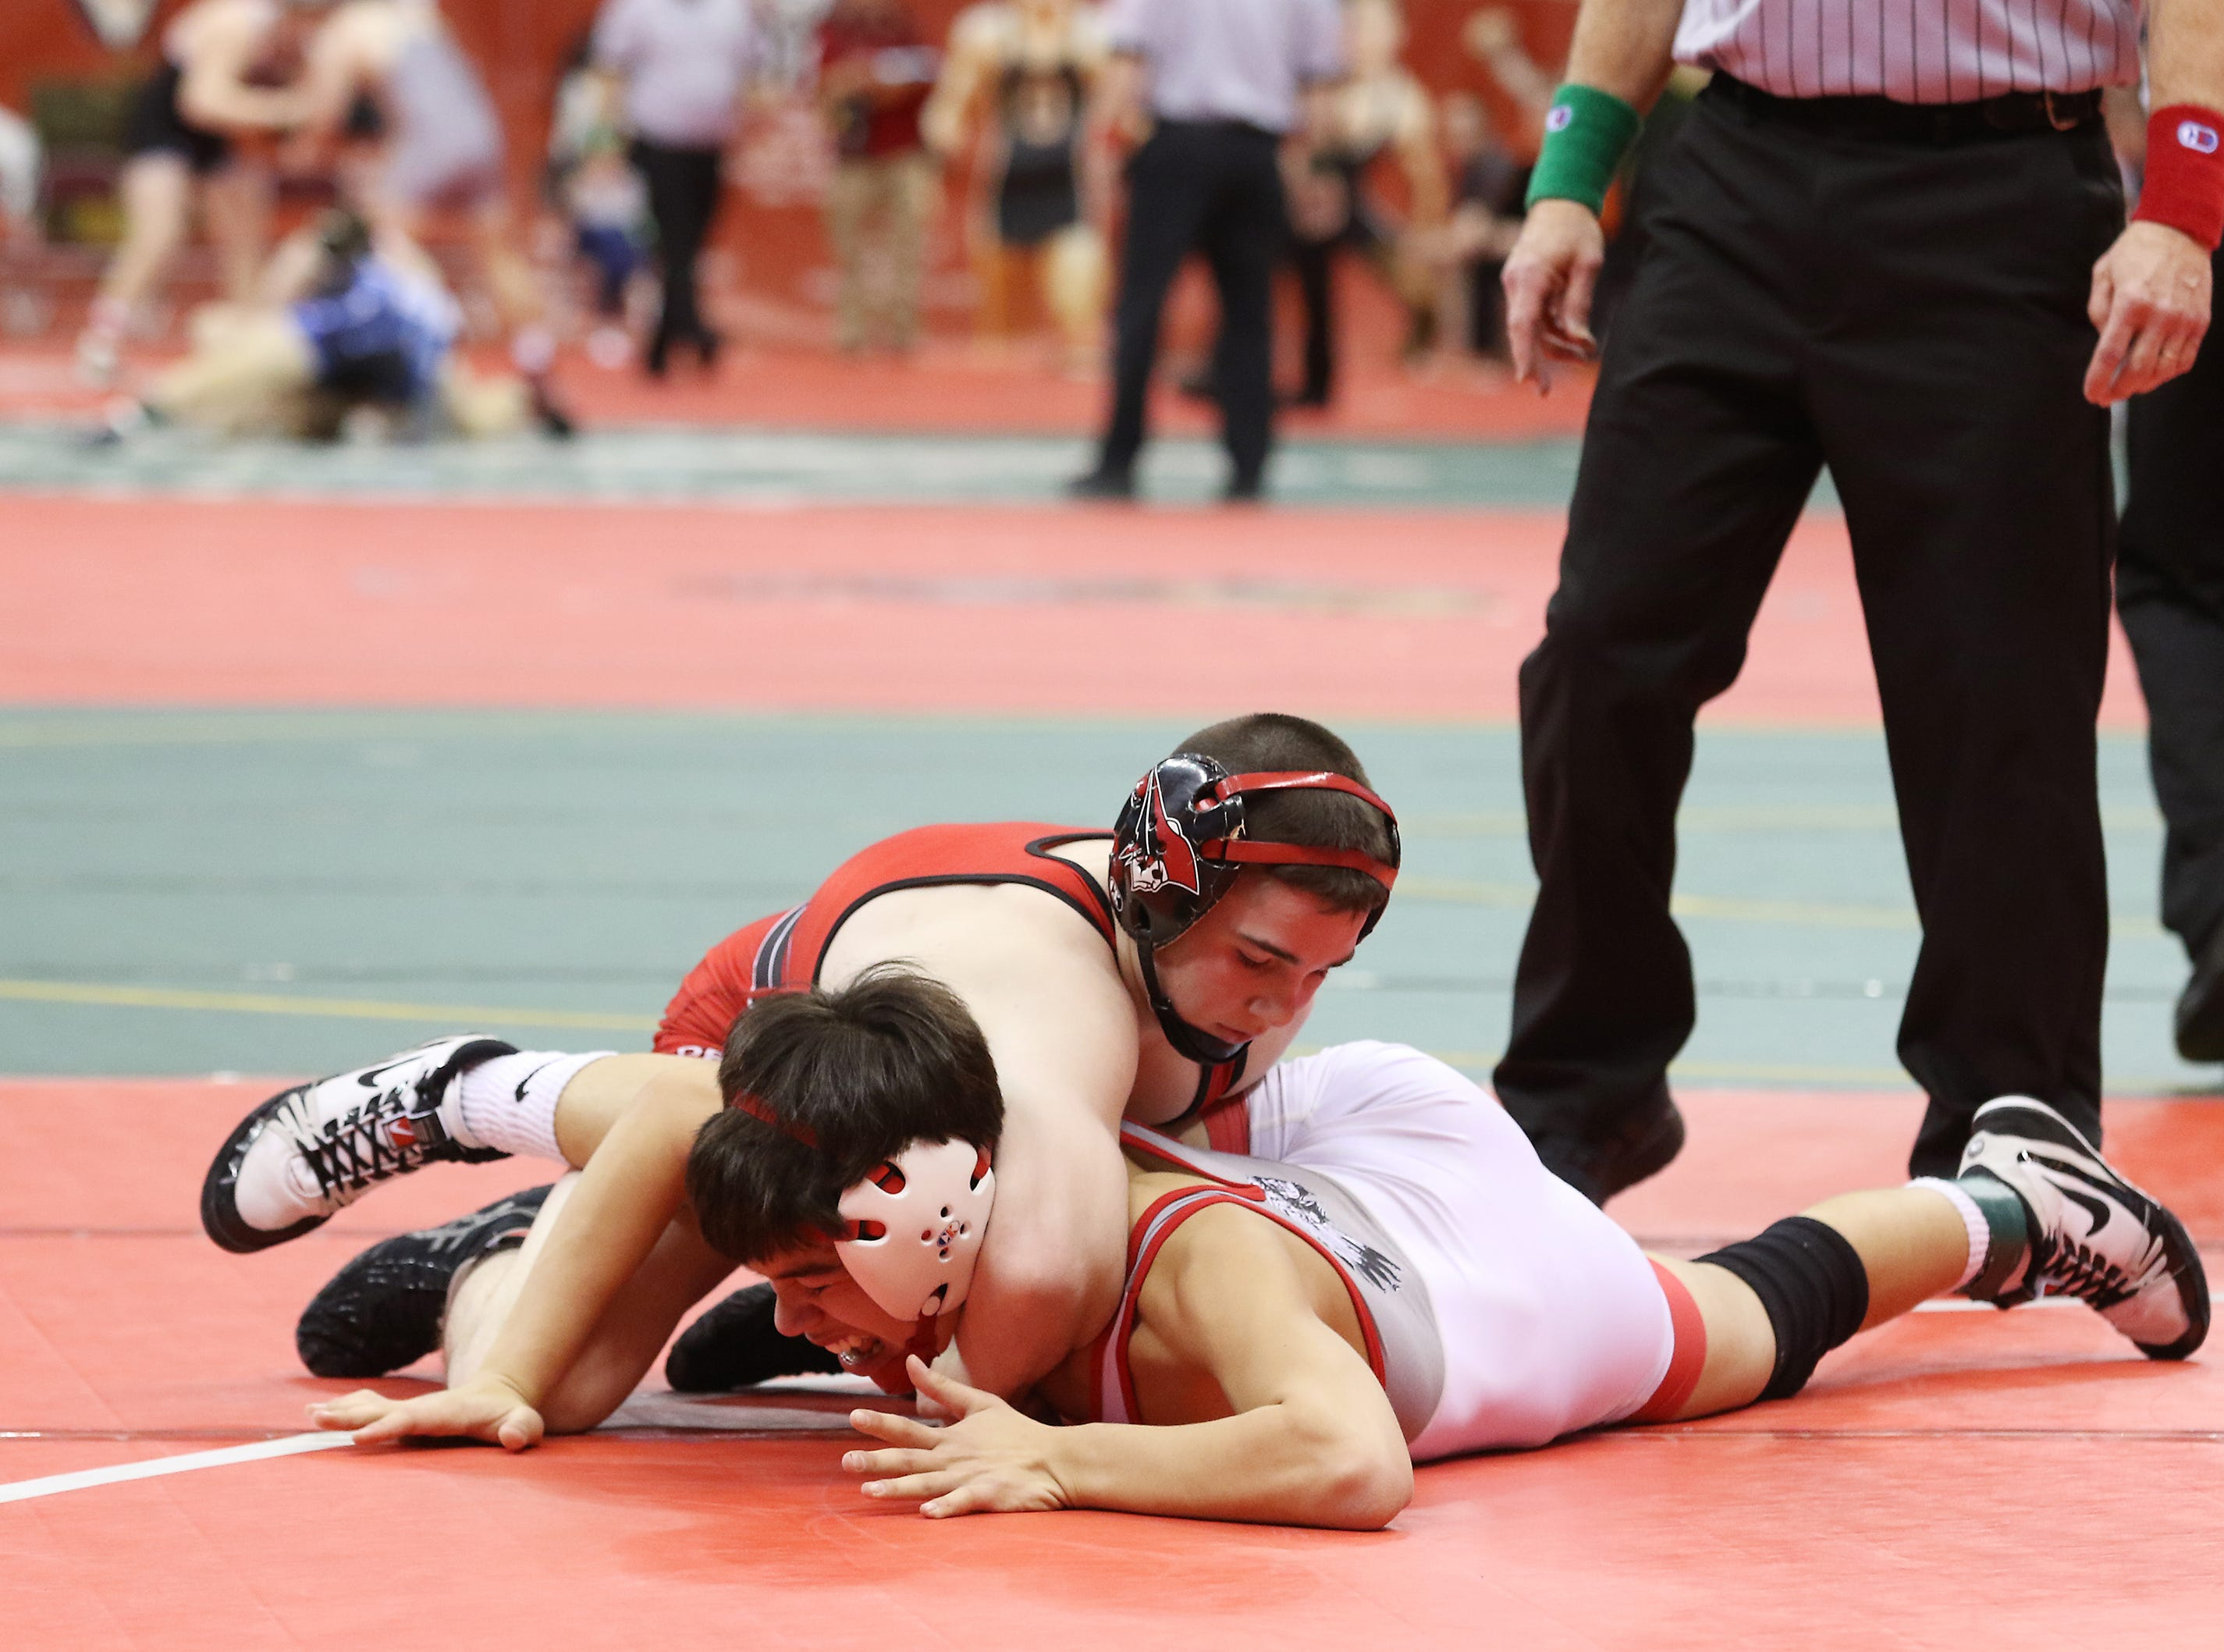 Bellevue's Gabe Alda wrestles Perry's Kyle Rowan in the 106 pound weight class at the Division II state wrestling tournament on Friday.